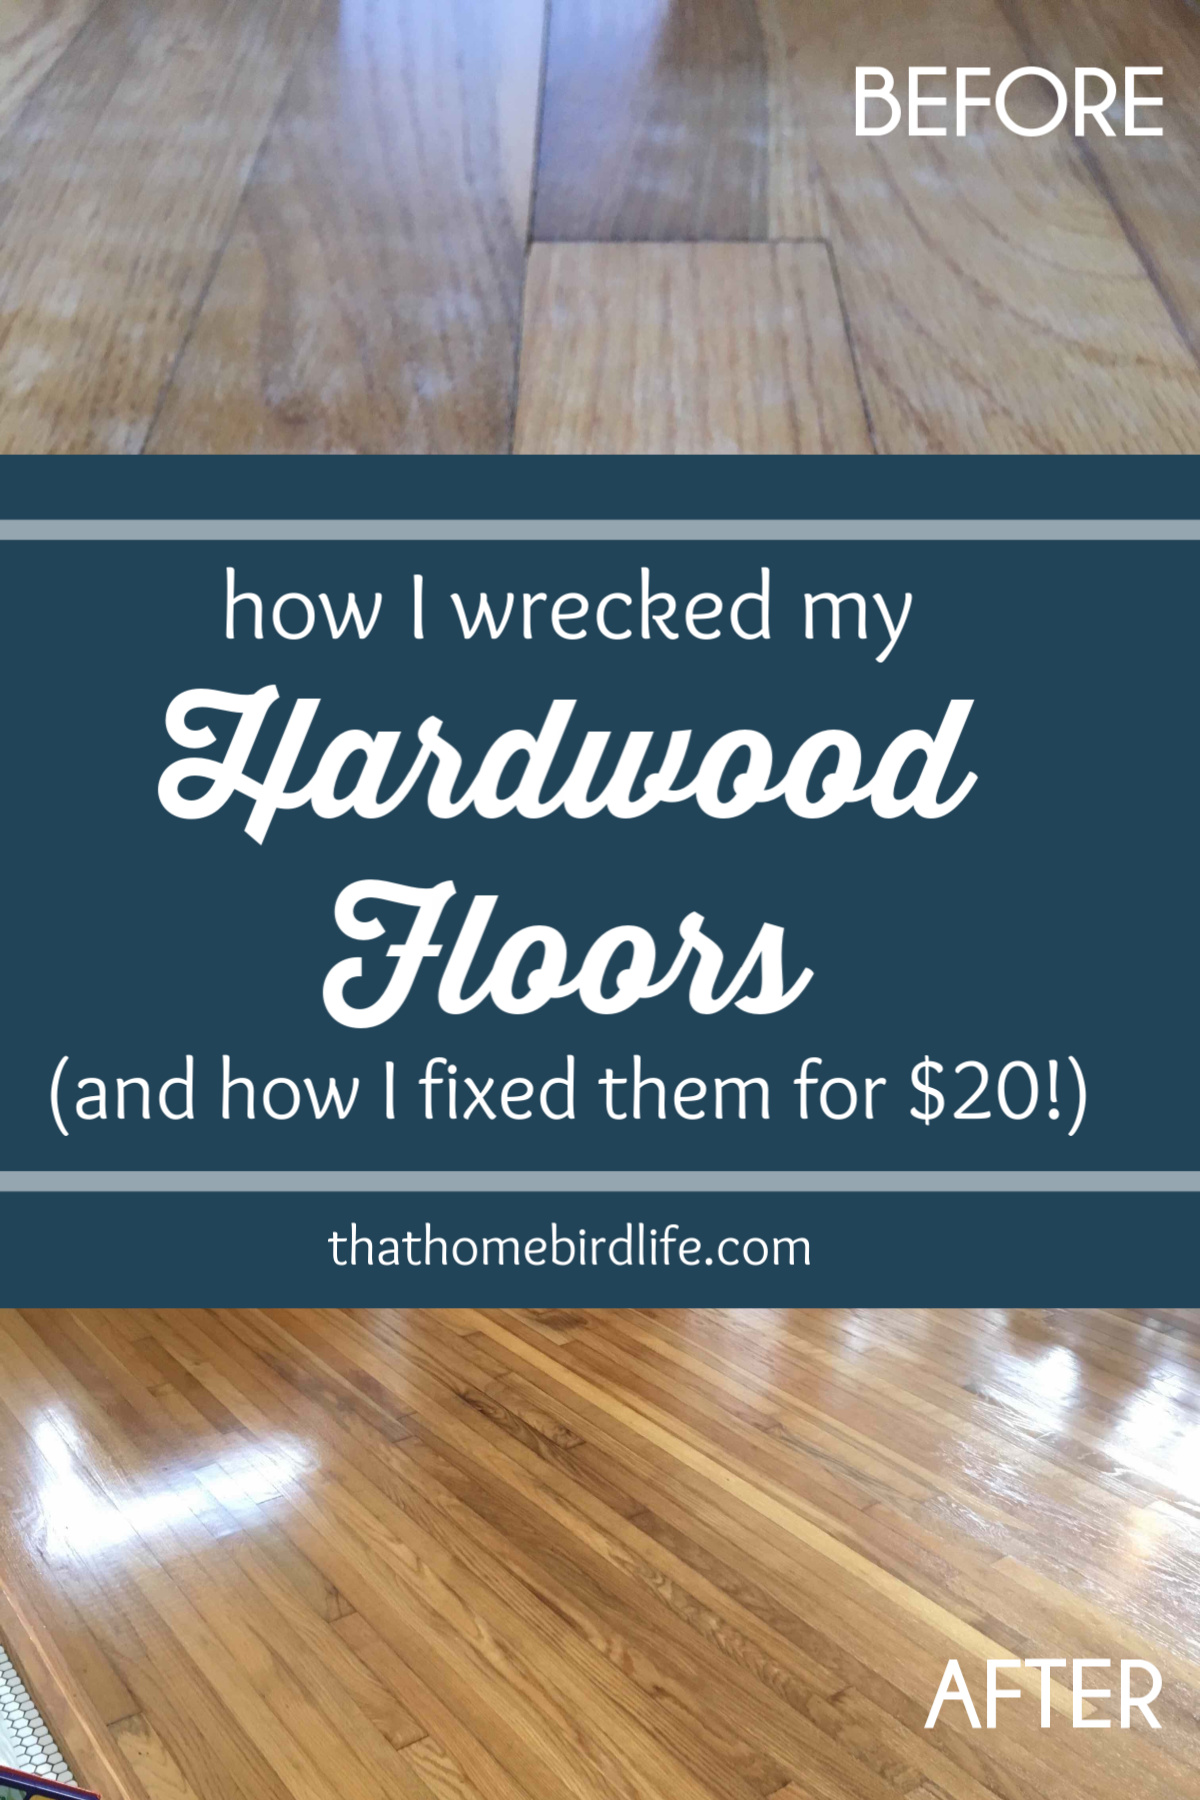 ... How I wrecked my hardwood floors and fixed them ...